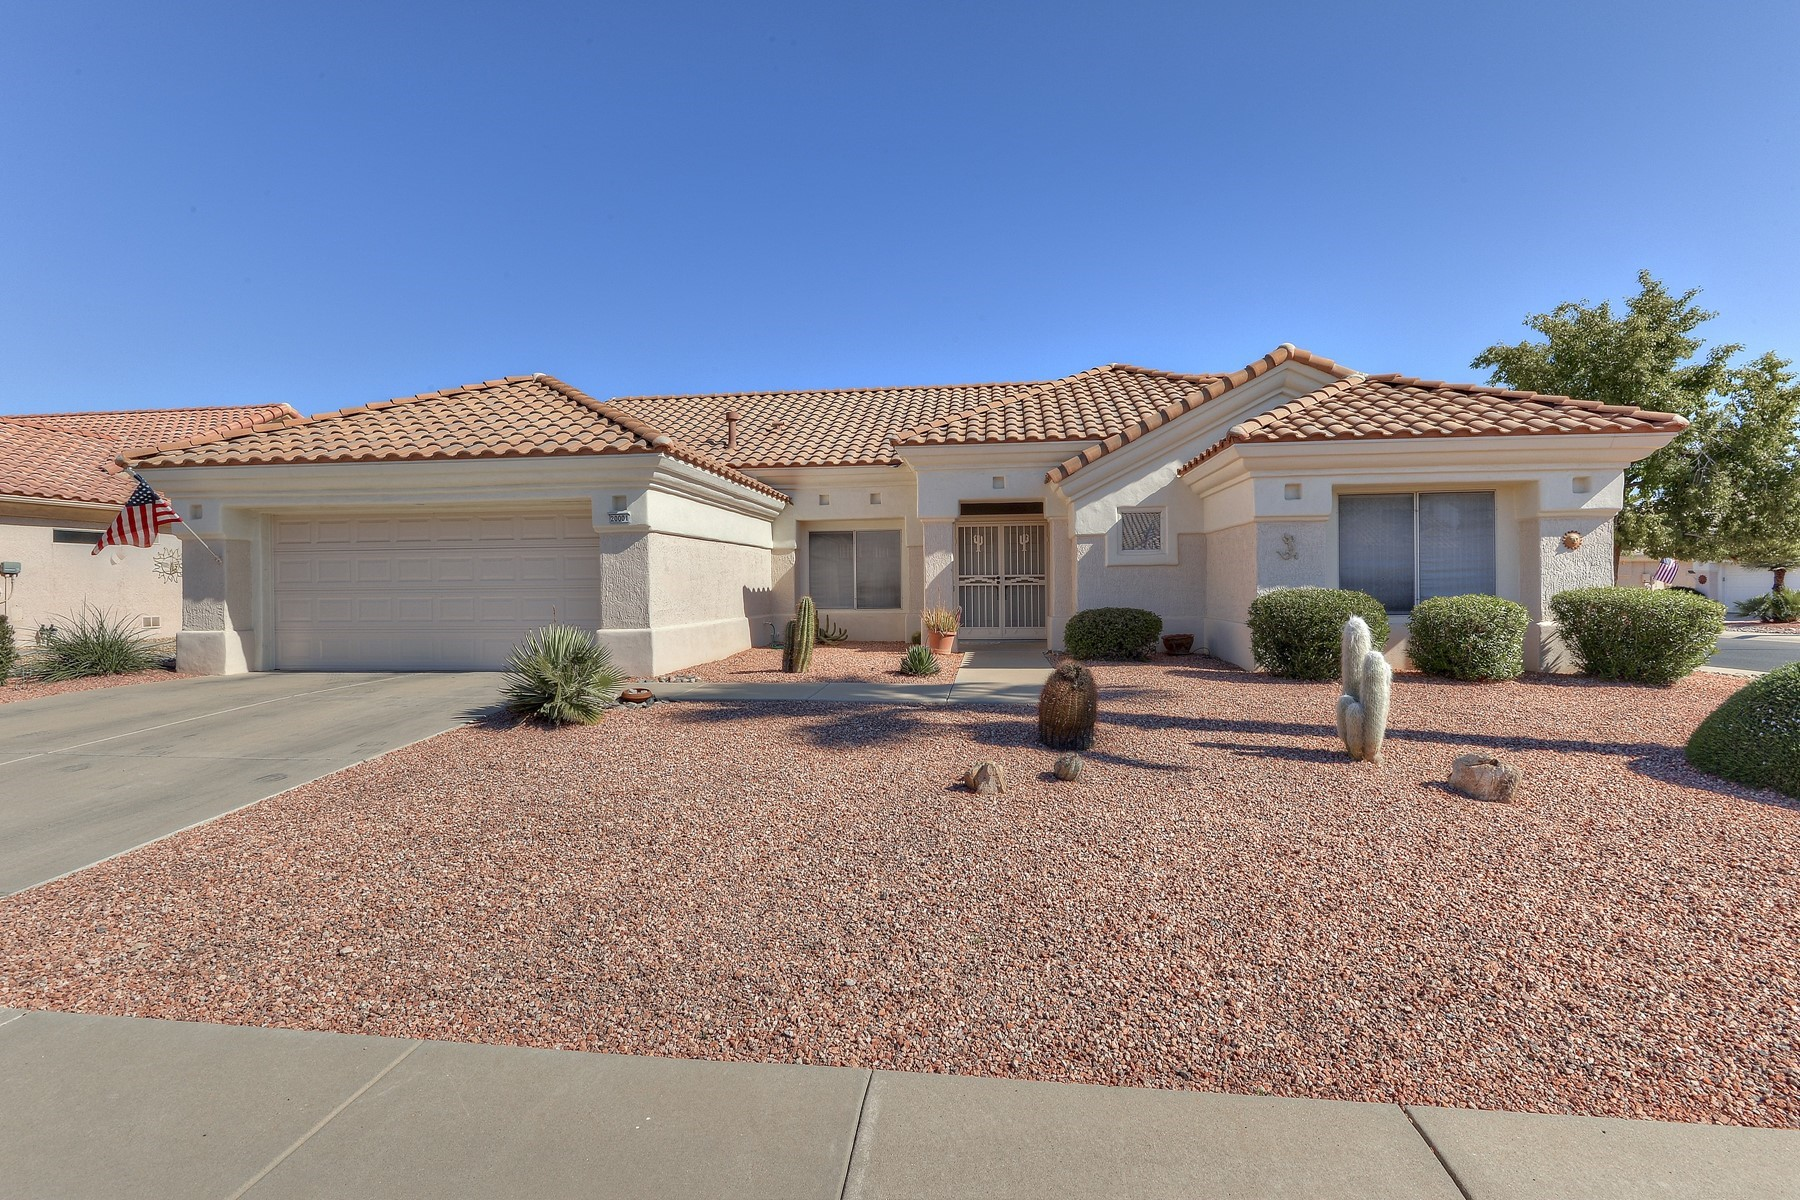 Single Family Homes for Active at Sun City West 20001 N 129th Lane Sun City West, Arizona 85375 United States